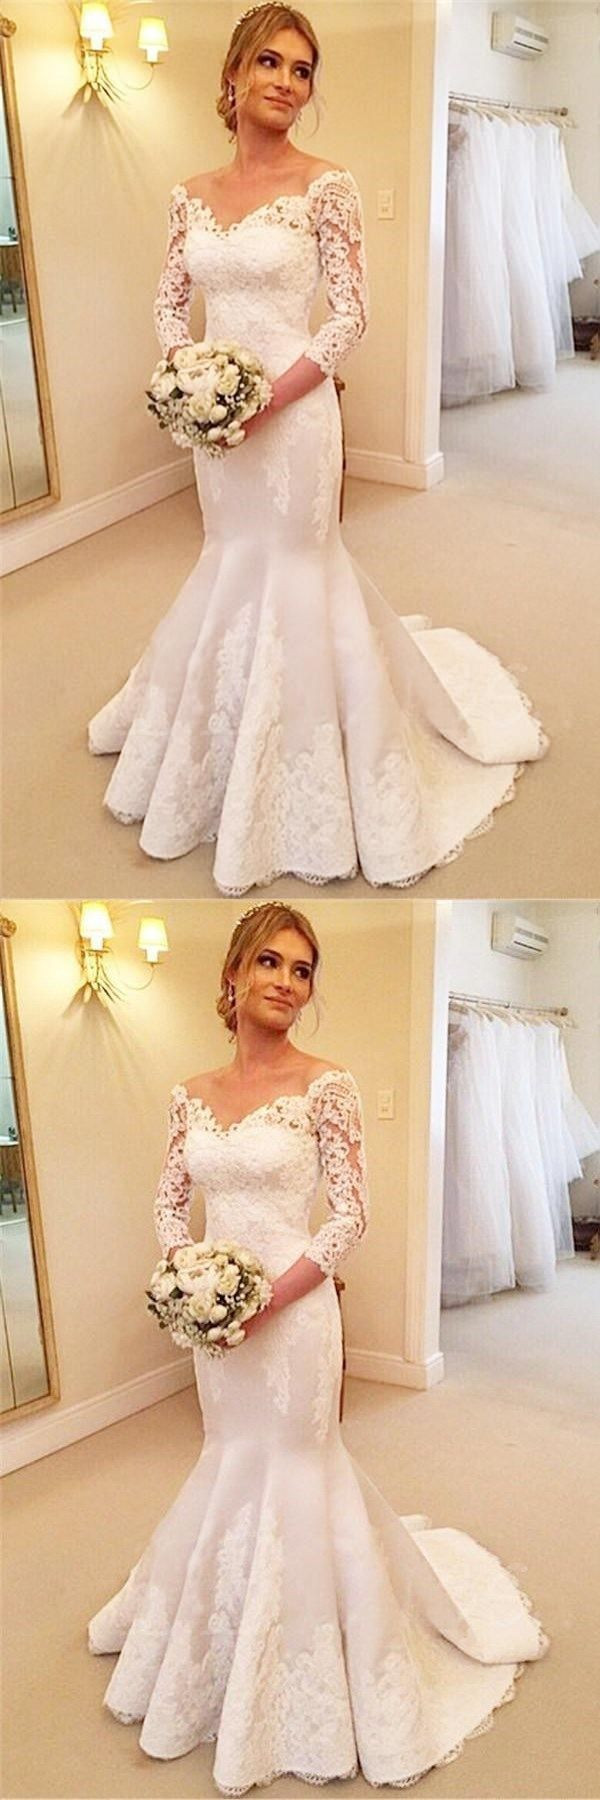 White satin vneck sleeves buttons mermaid wedding dress with